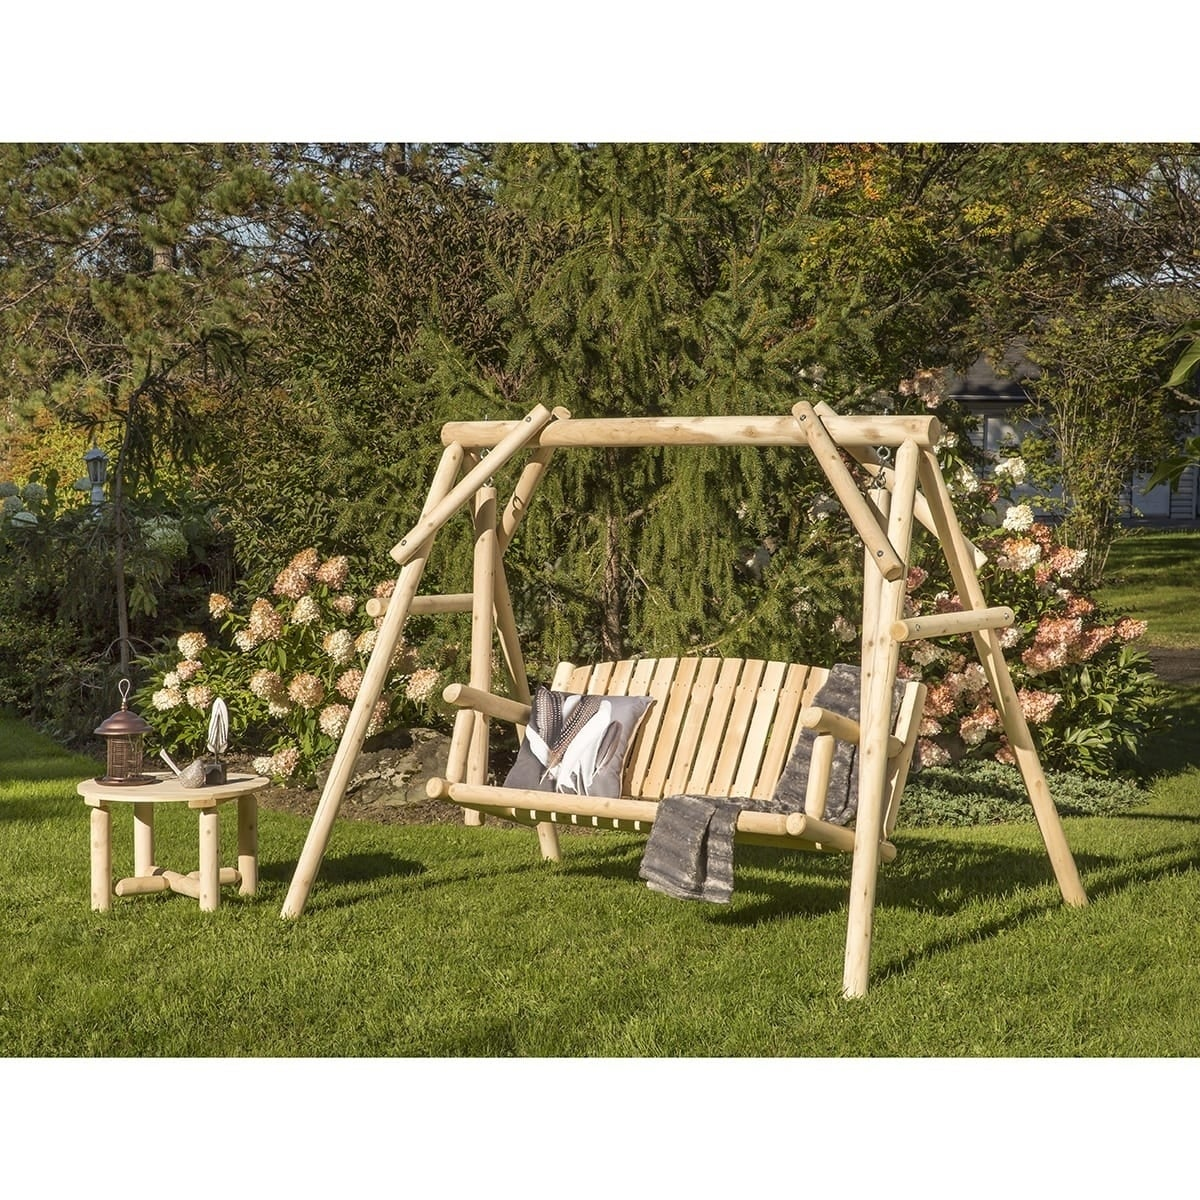 Shop Bestar White Cedar Swing and Coffee Table Set - Free Shipping ...